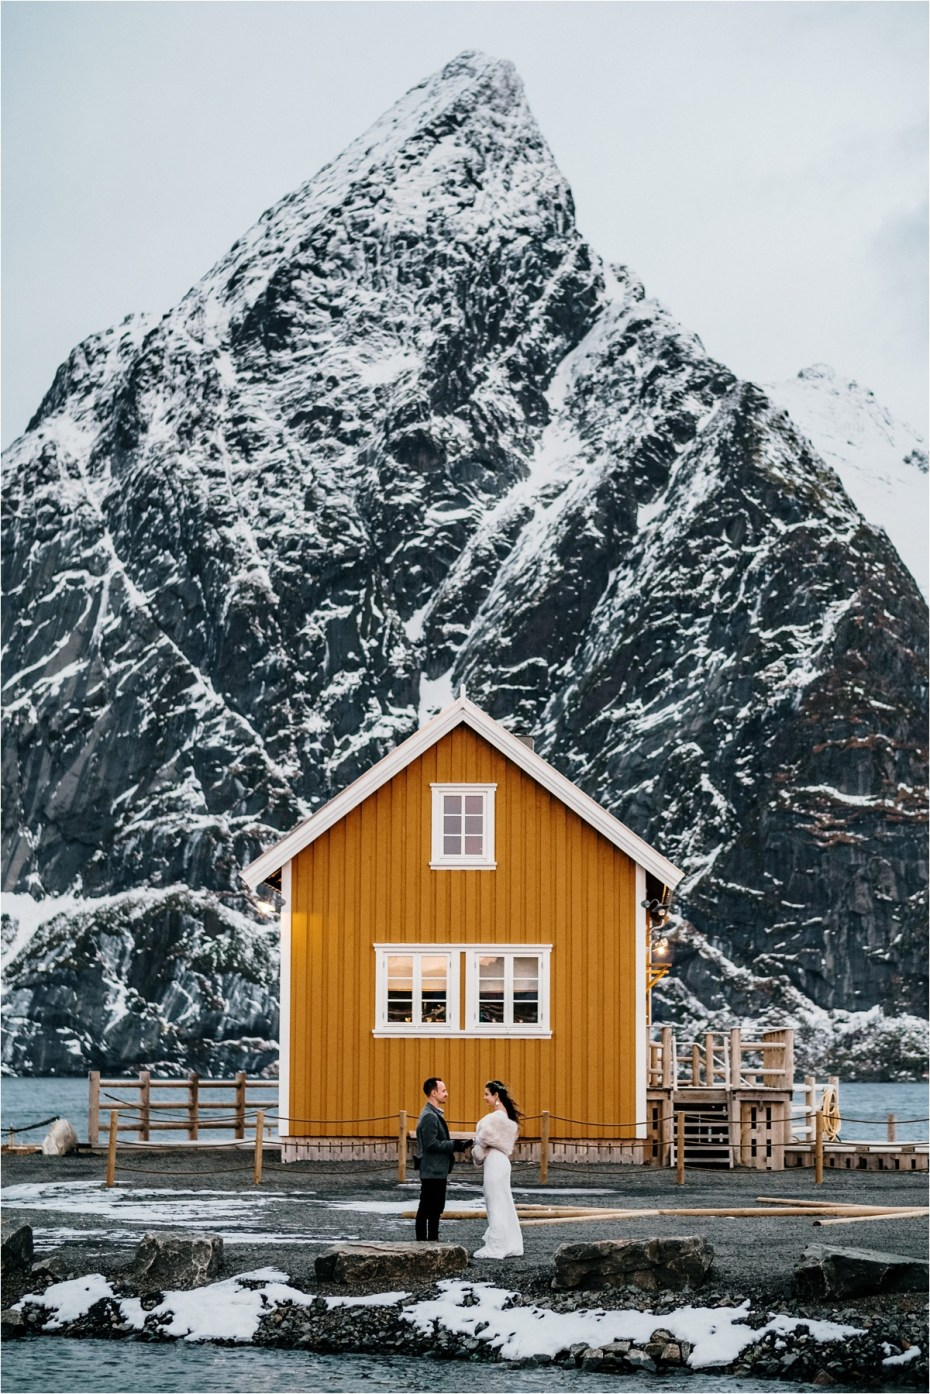 Norway winter elopement with fisherman's cabins. Photos by Wild Connections Photography